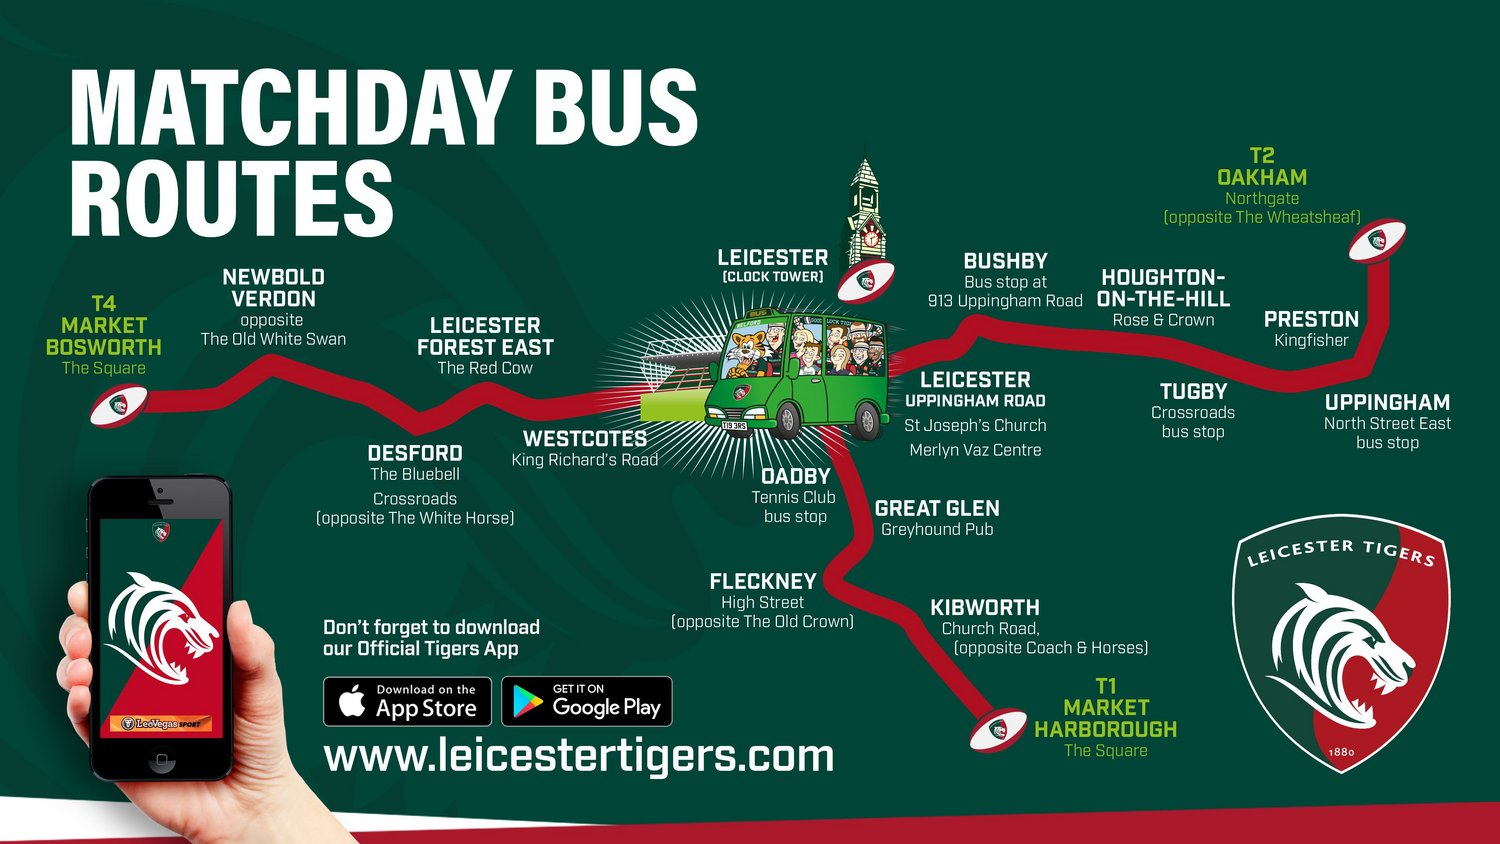 Centrebus matchday services